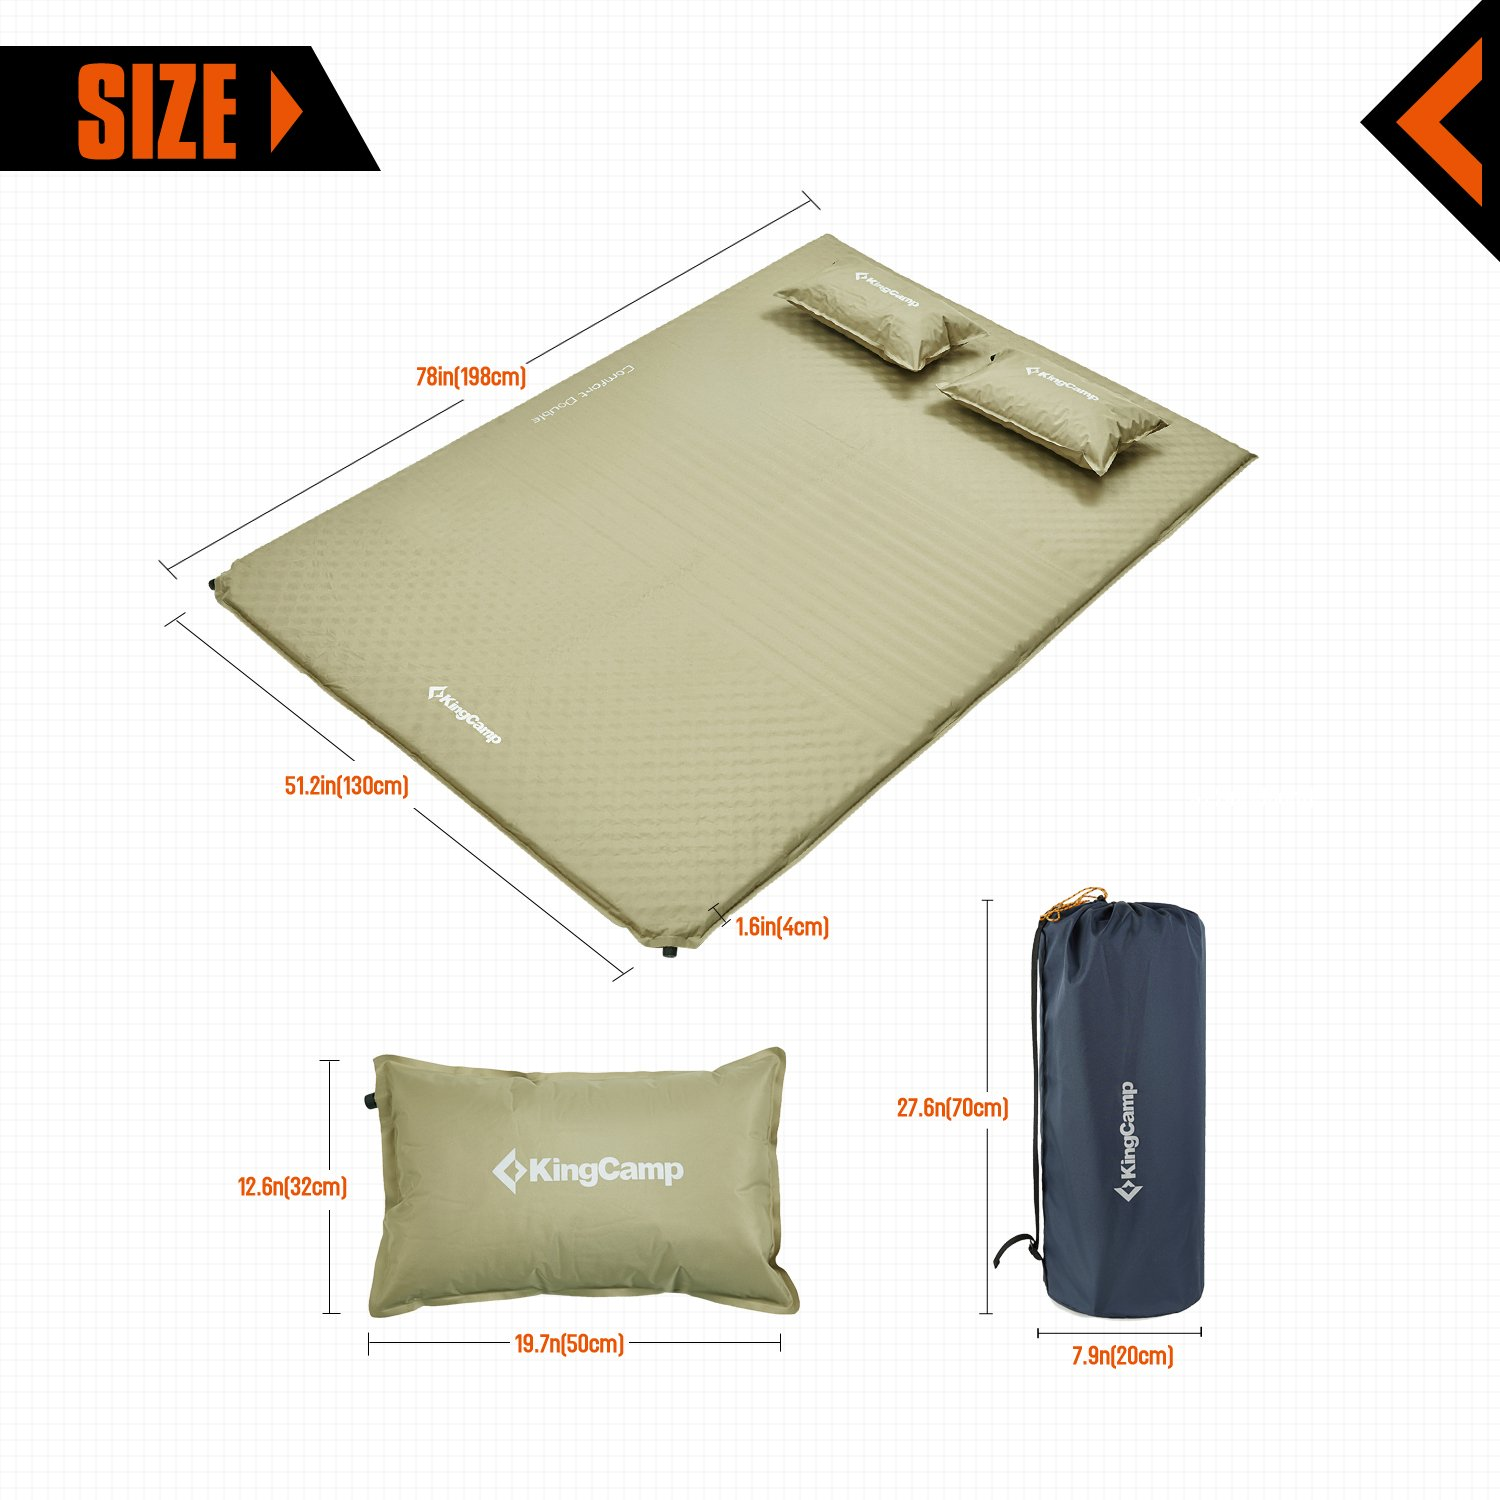 KingCamp Triple Zone Comfort Double Self Inflating 75D Micro Brushed Sleeping Pad Mattress with 2 Pillows